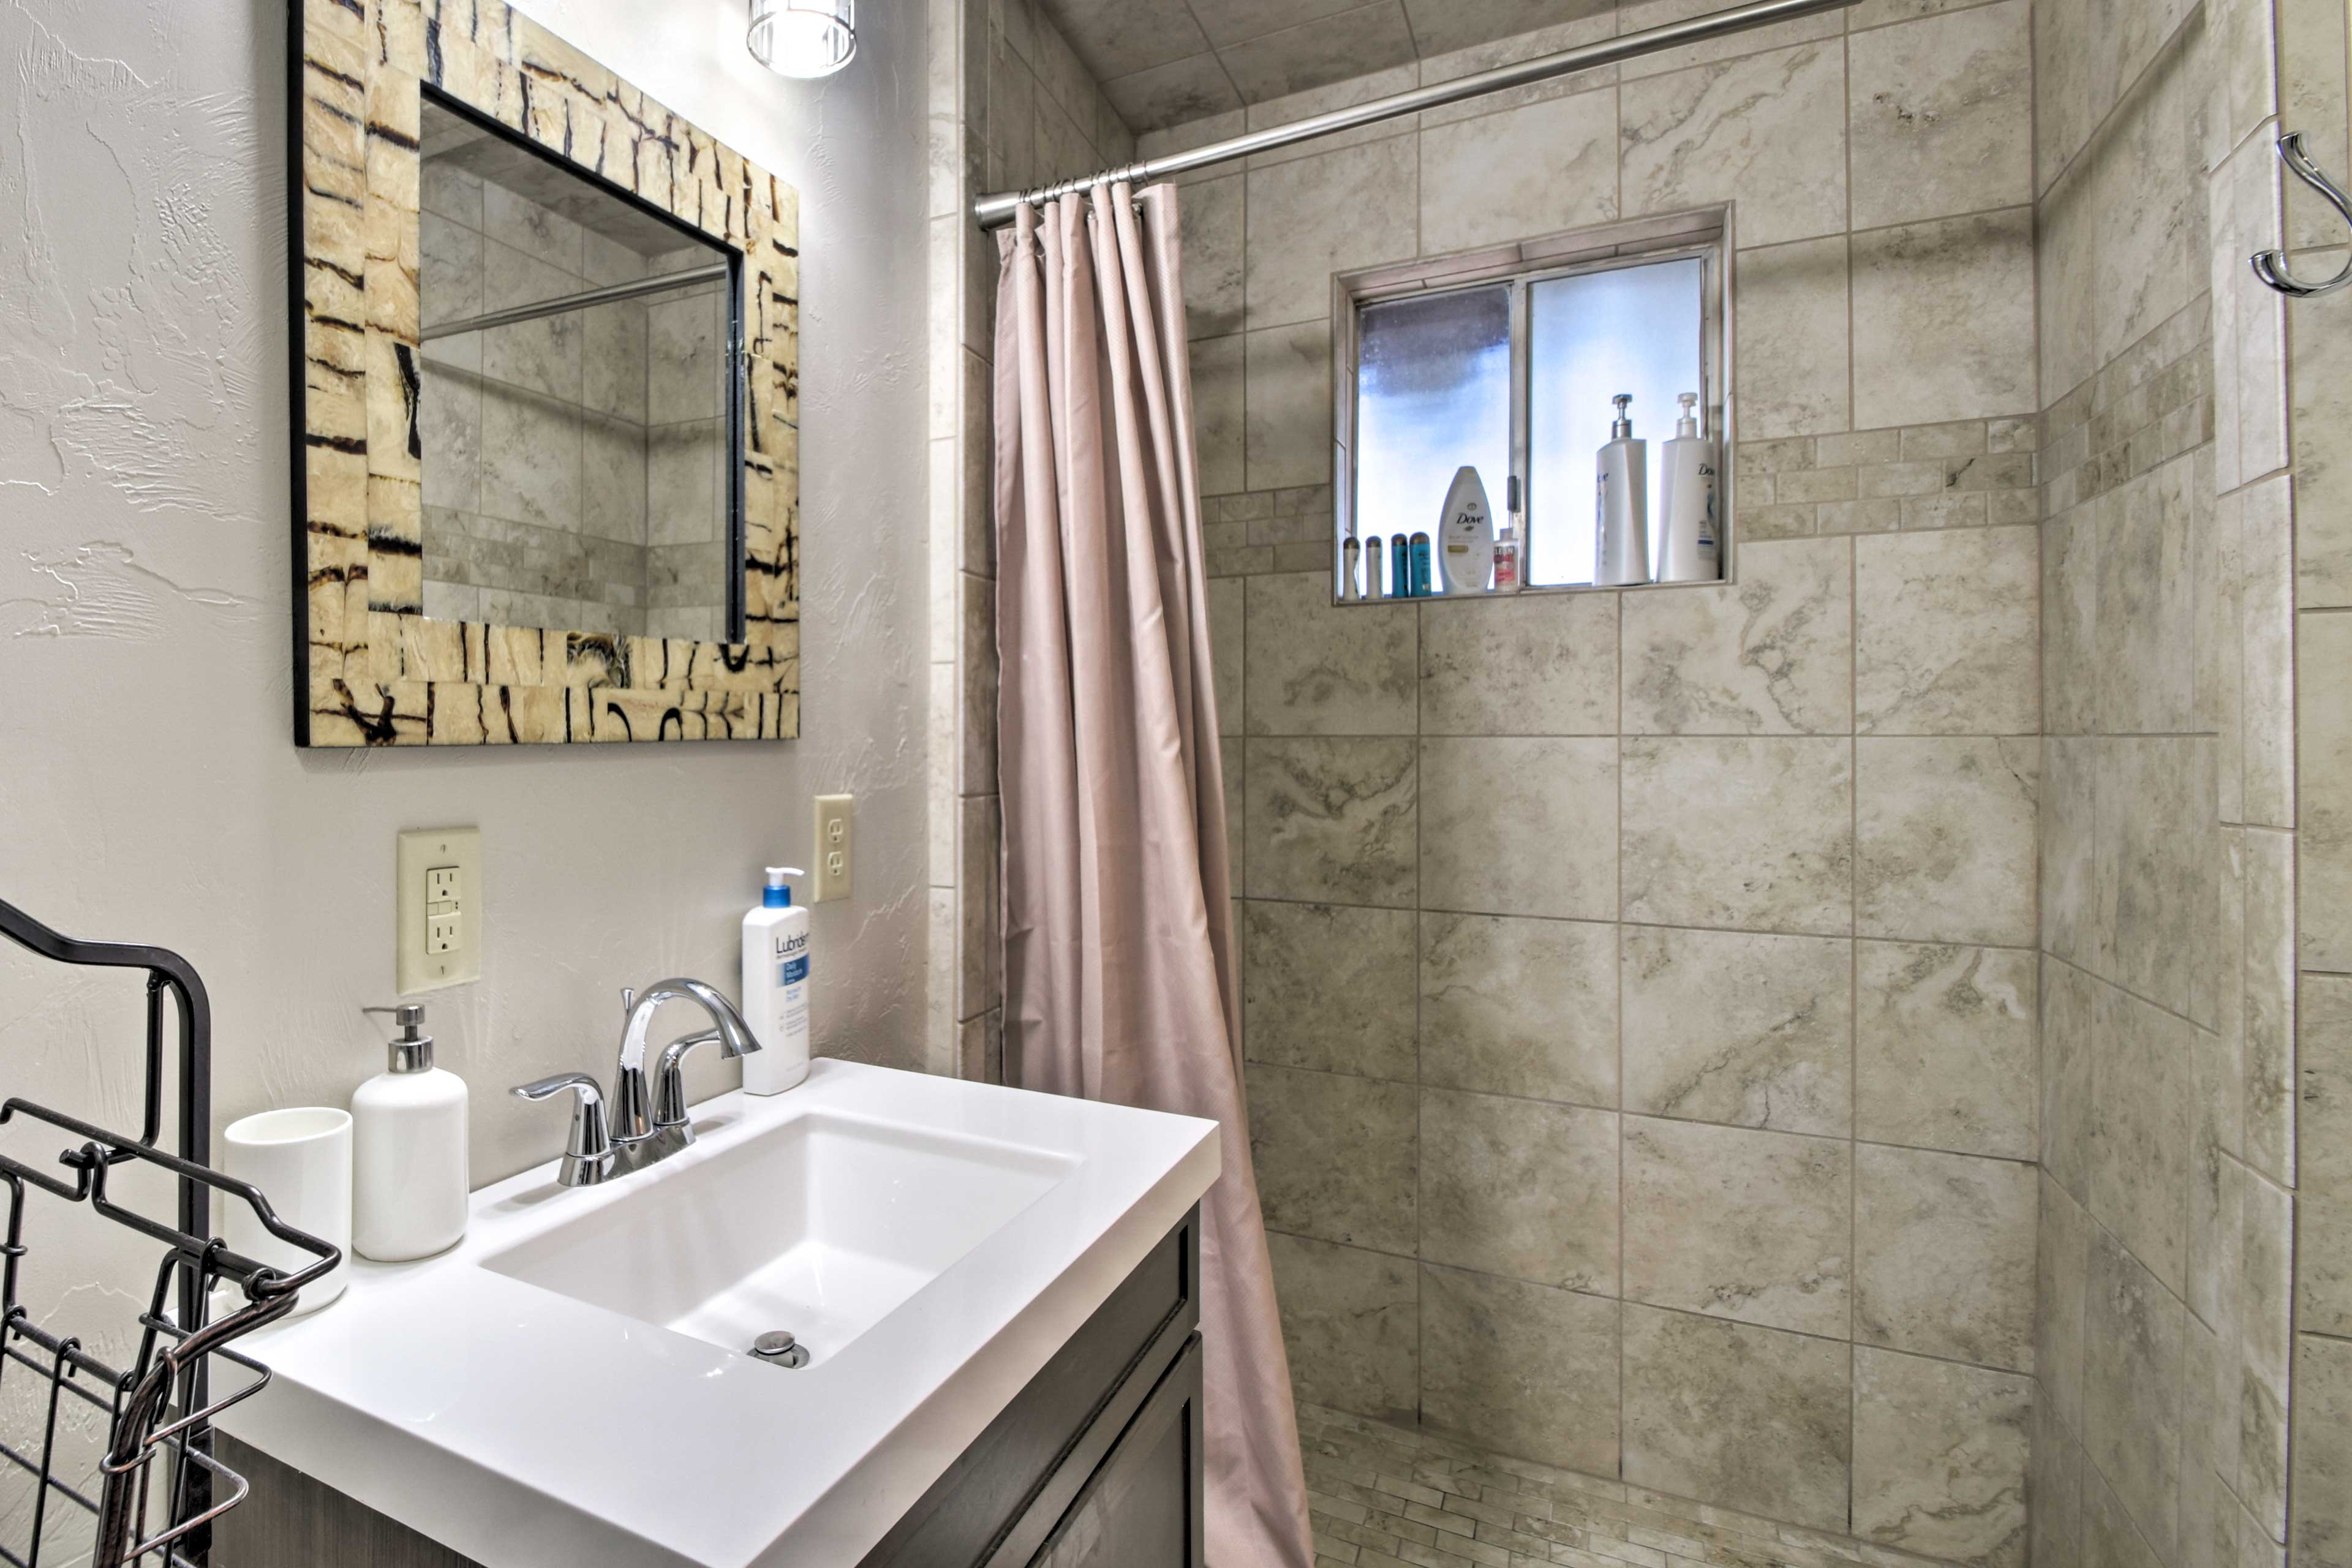 After a day on the slopes, shower off in this spacious bathroom.